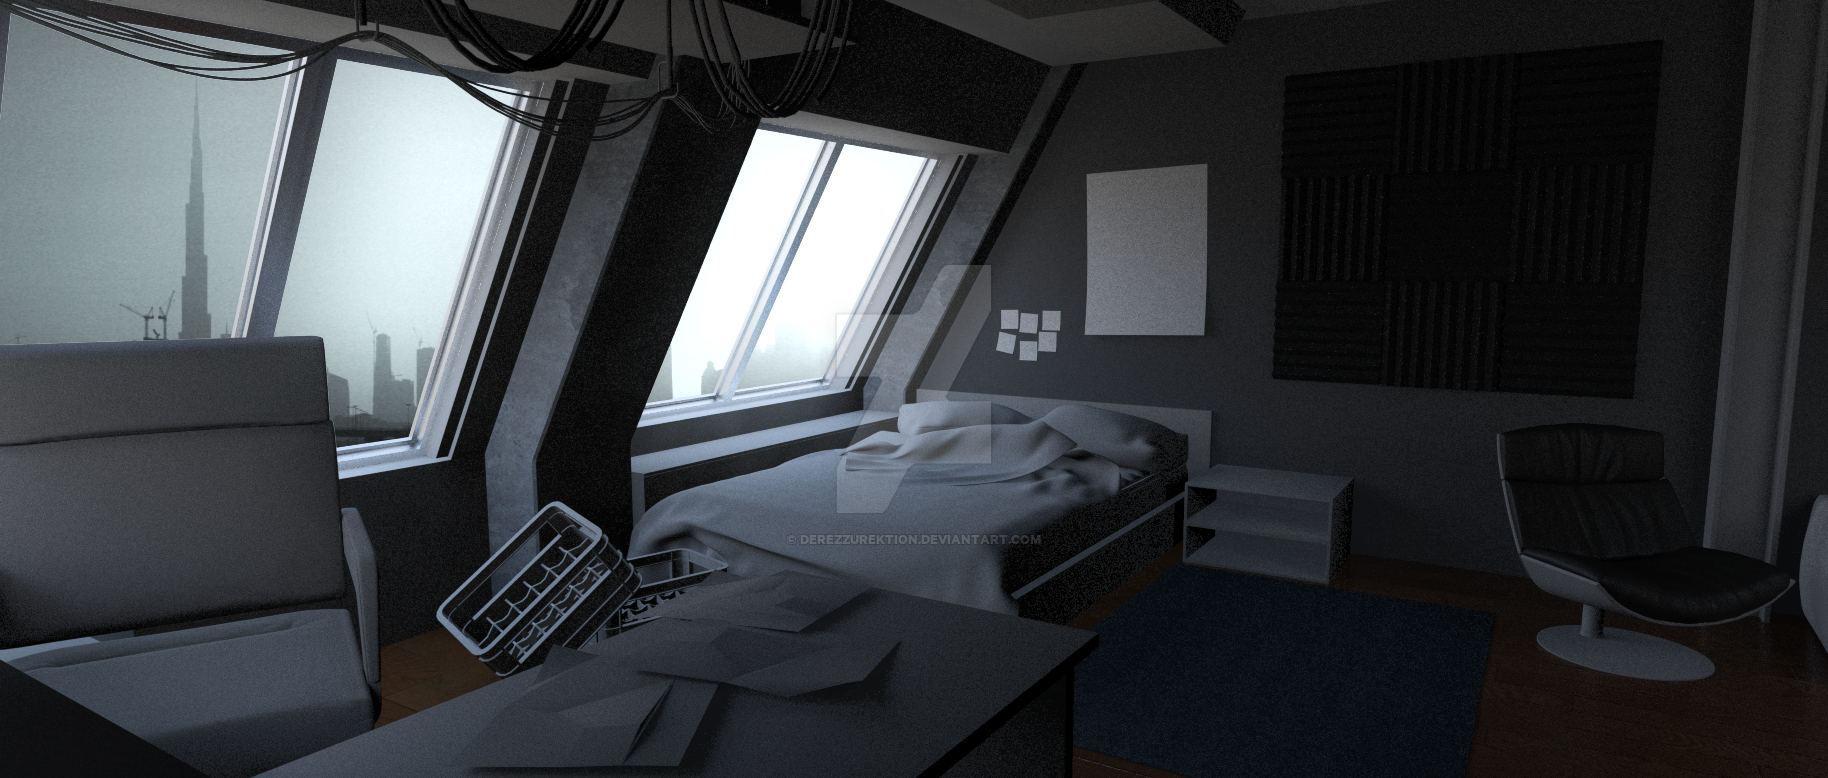 Apartment 2 Look-Dev Office and Bedroom WIP by ...